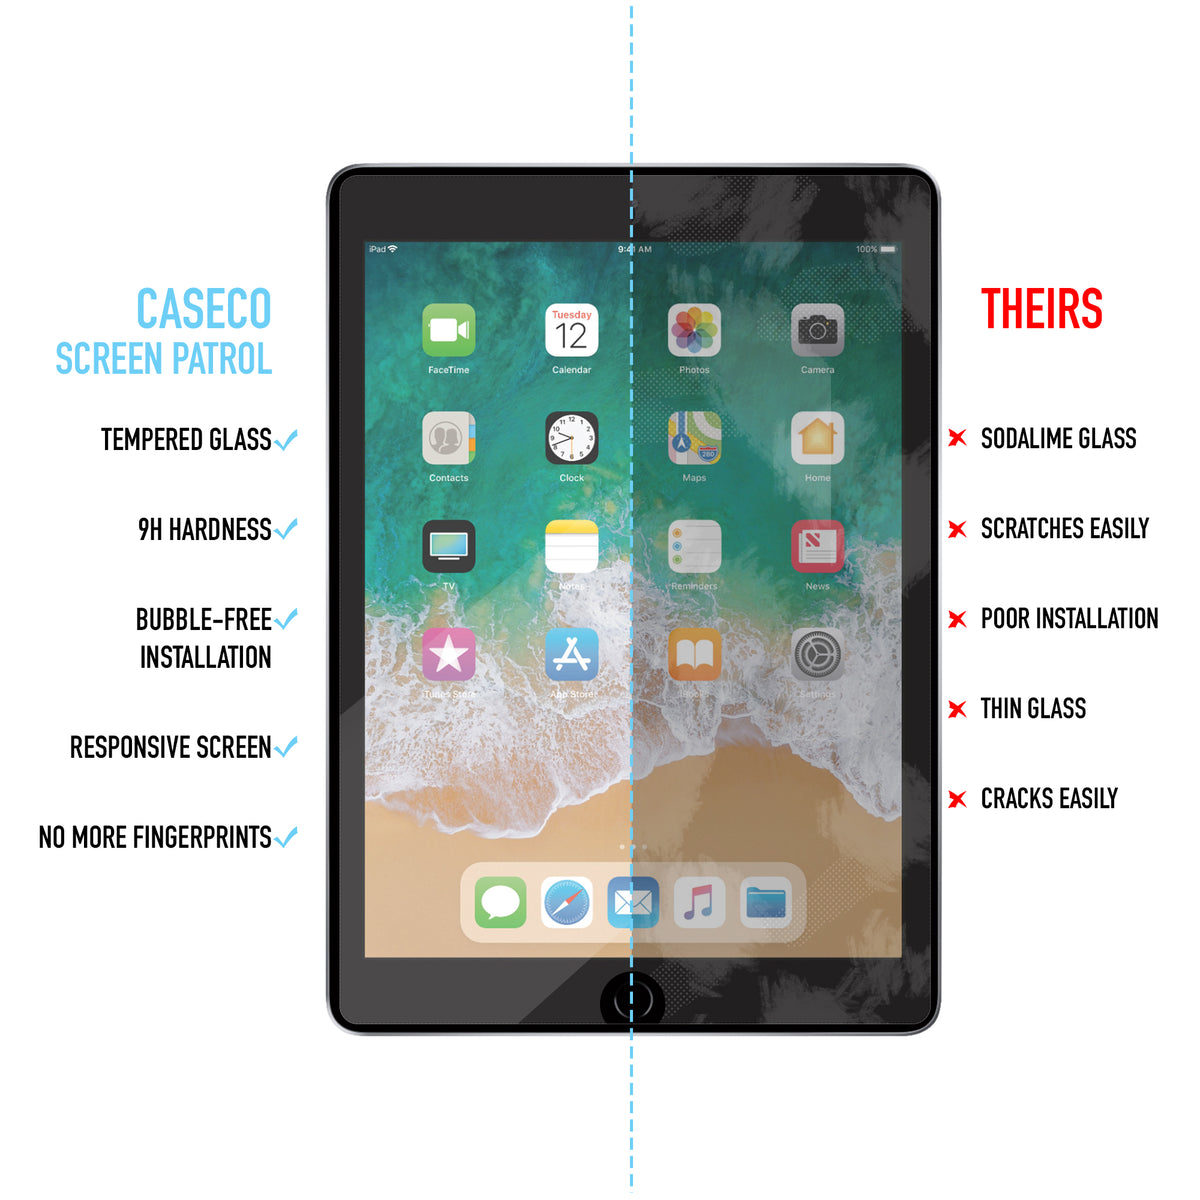 Screen Patrol - Tempered Glass - iPad Pro 12.9 (1st & 2nd Generation)